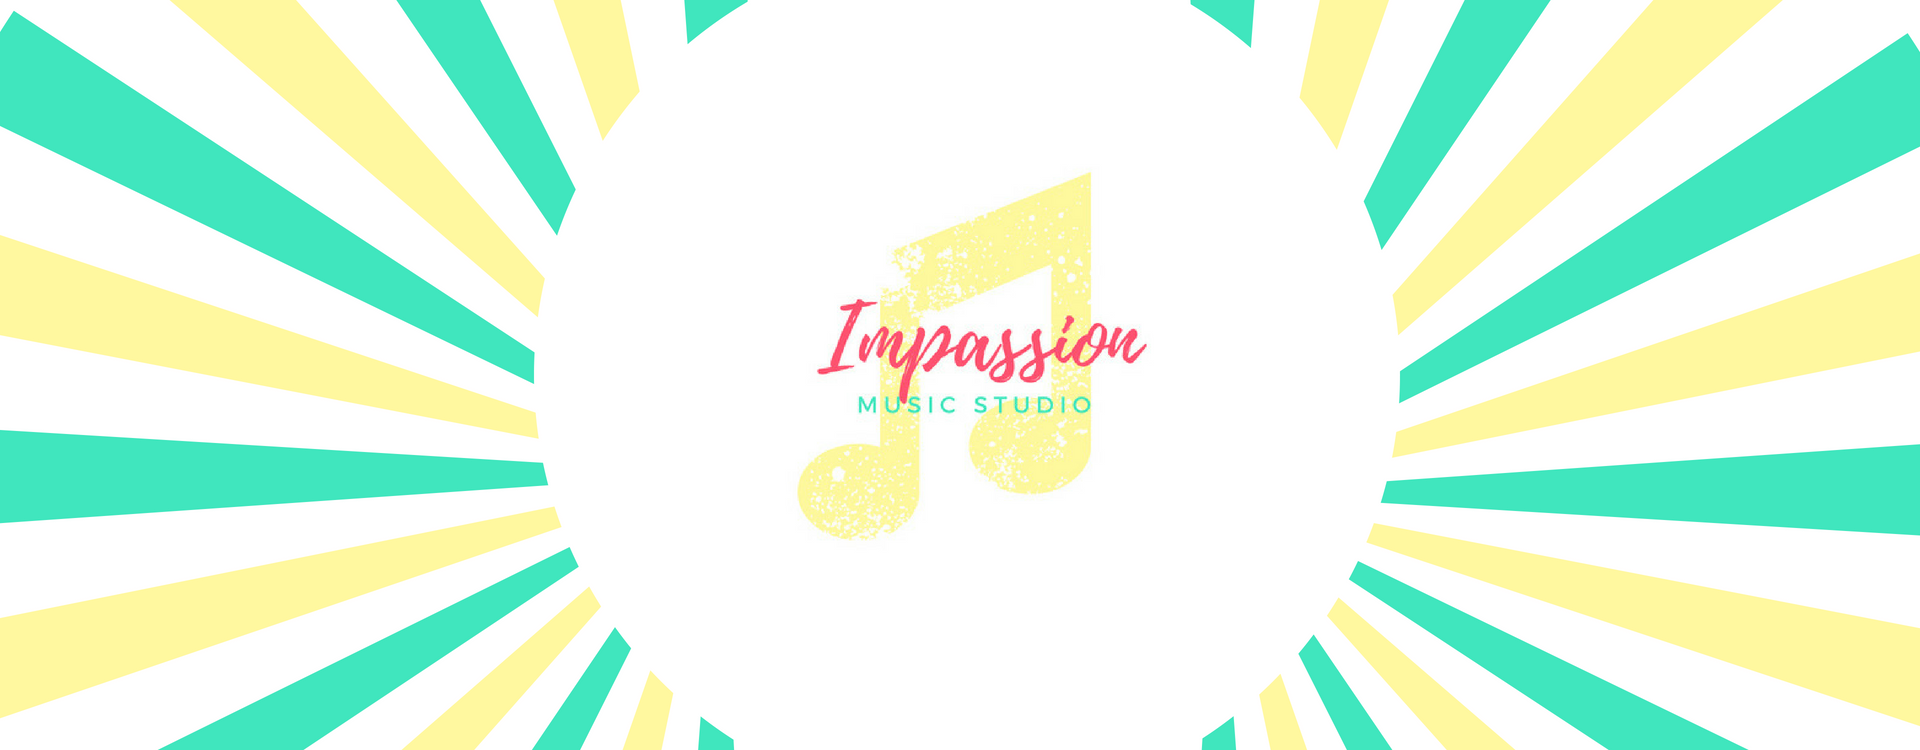 Impassion Music Studio